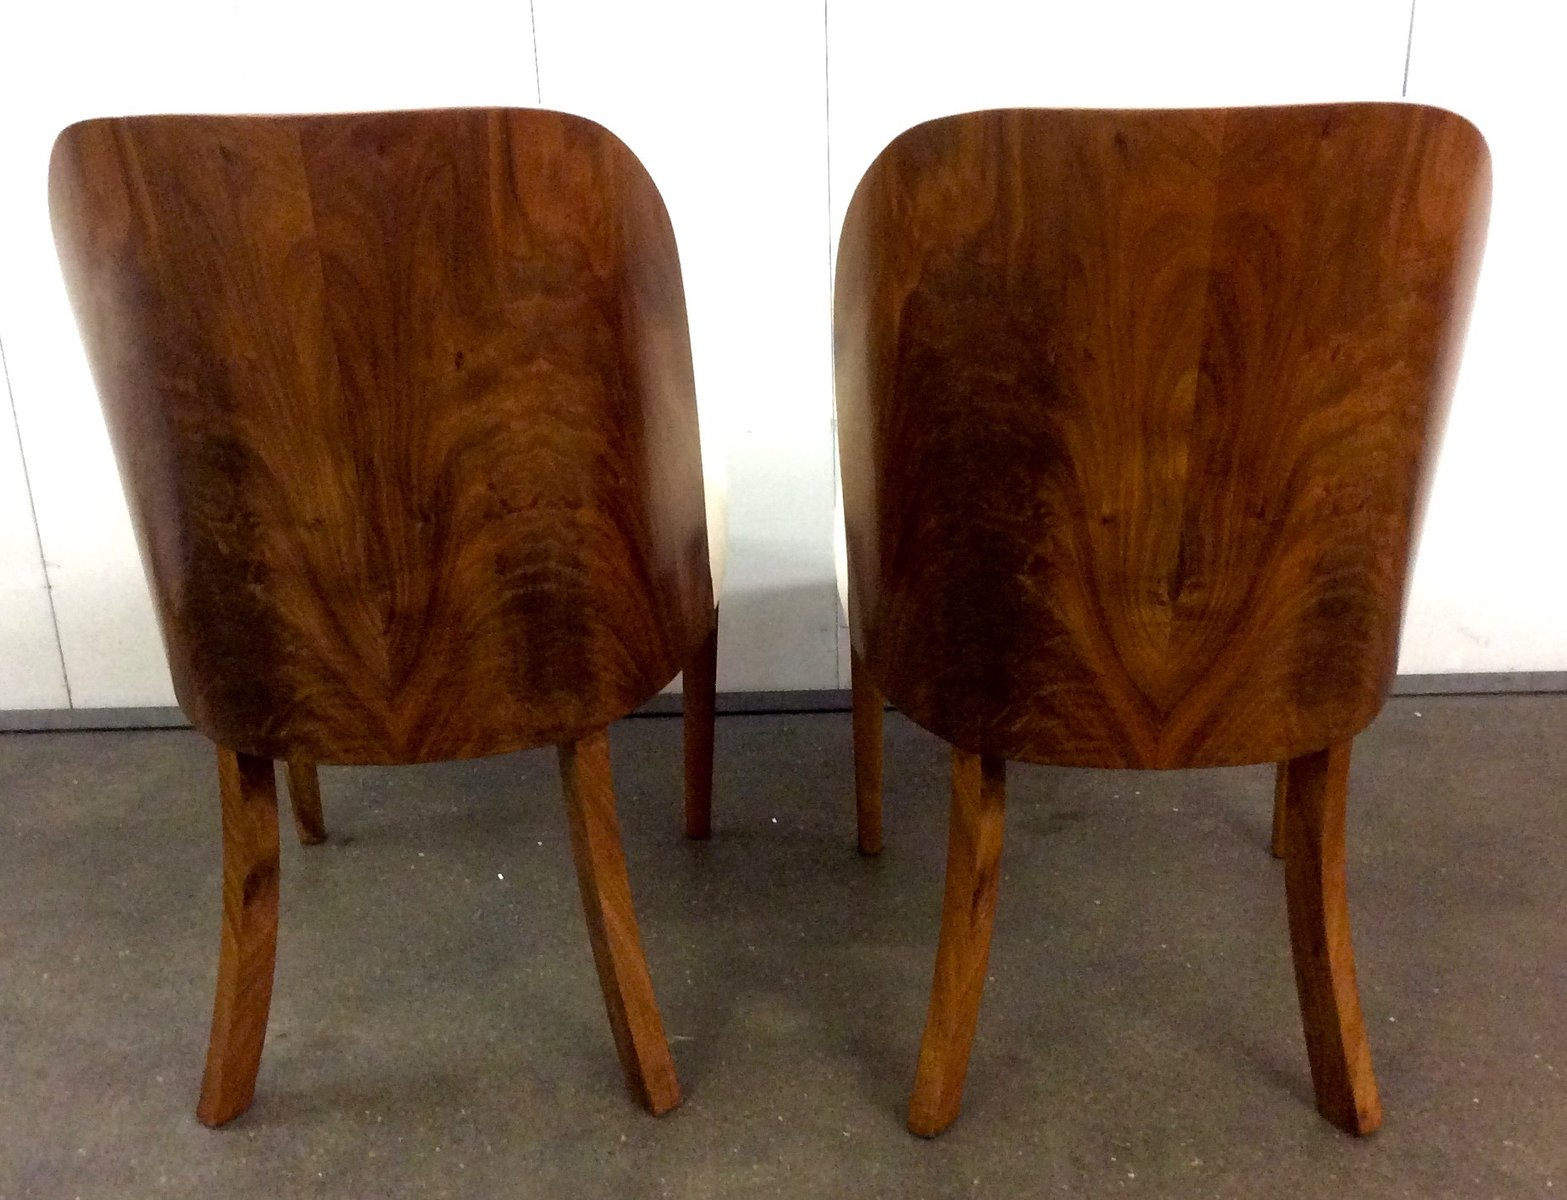 art deco walnut tub chairs by harry and lou epstein s set of  - art deco walnut tub chairs by harry and lou epstein s set of